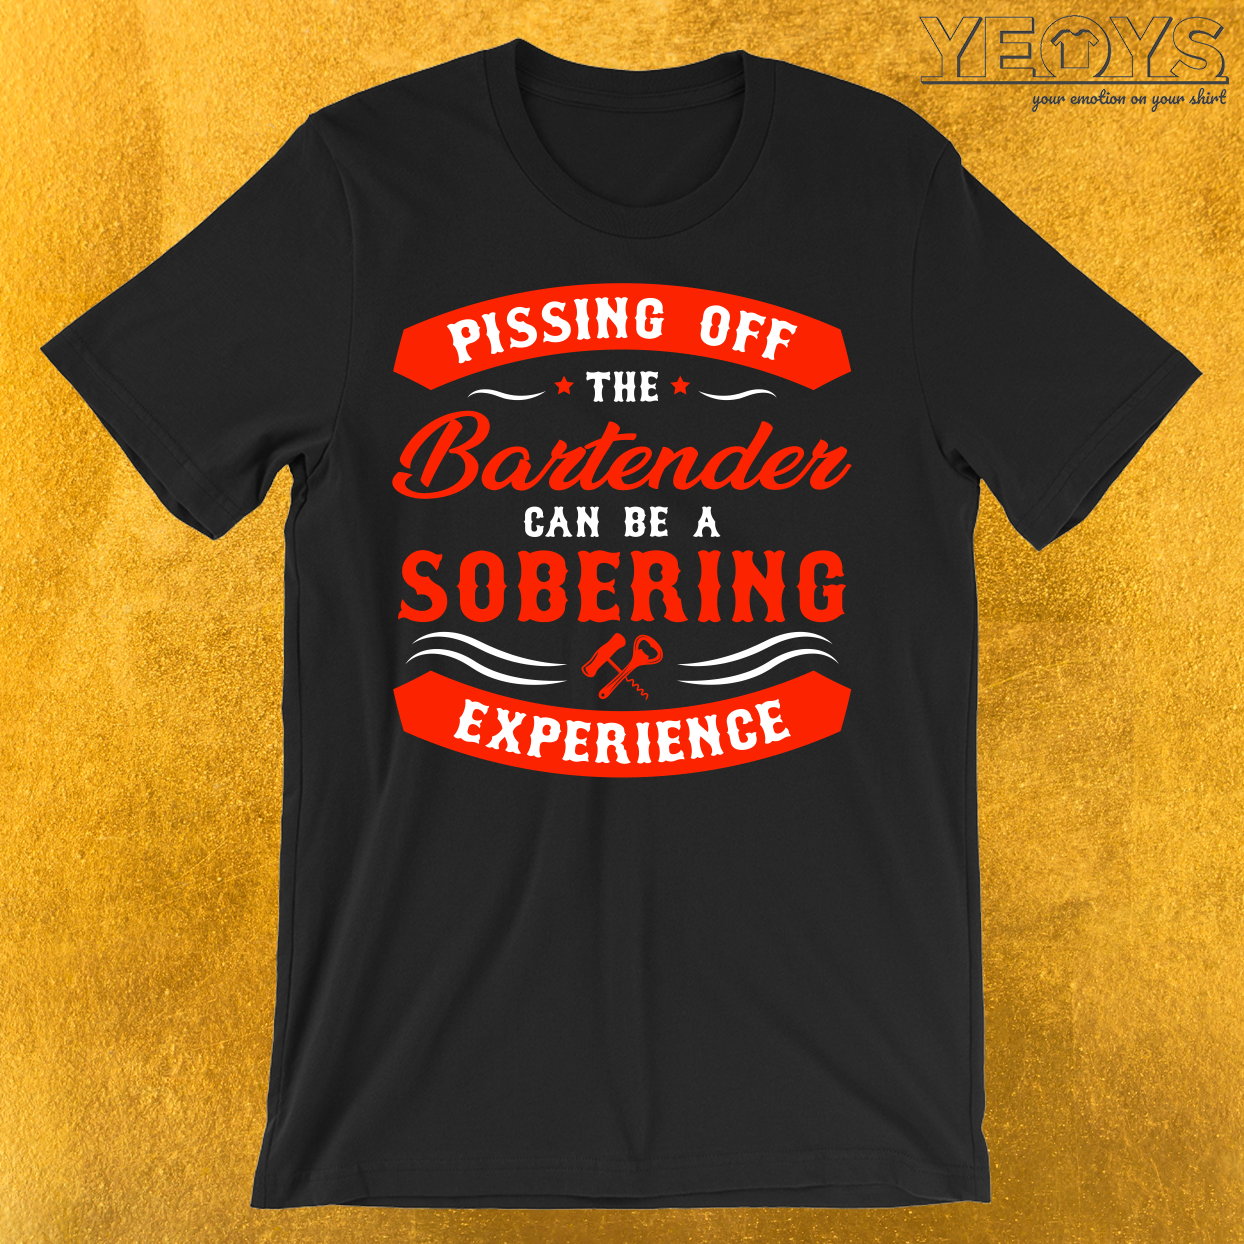 Pissing Off Bartender Sobering Experience T-Shirt